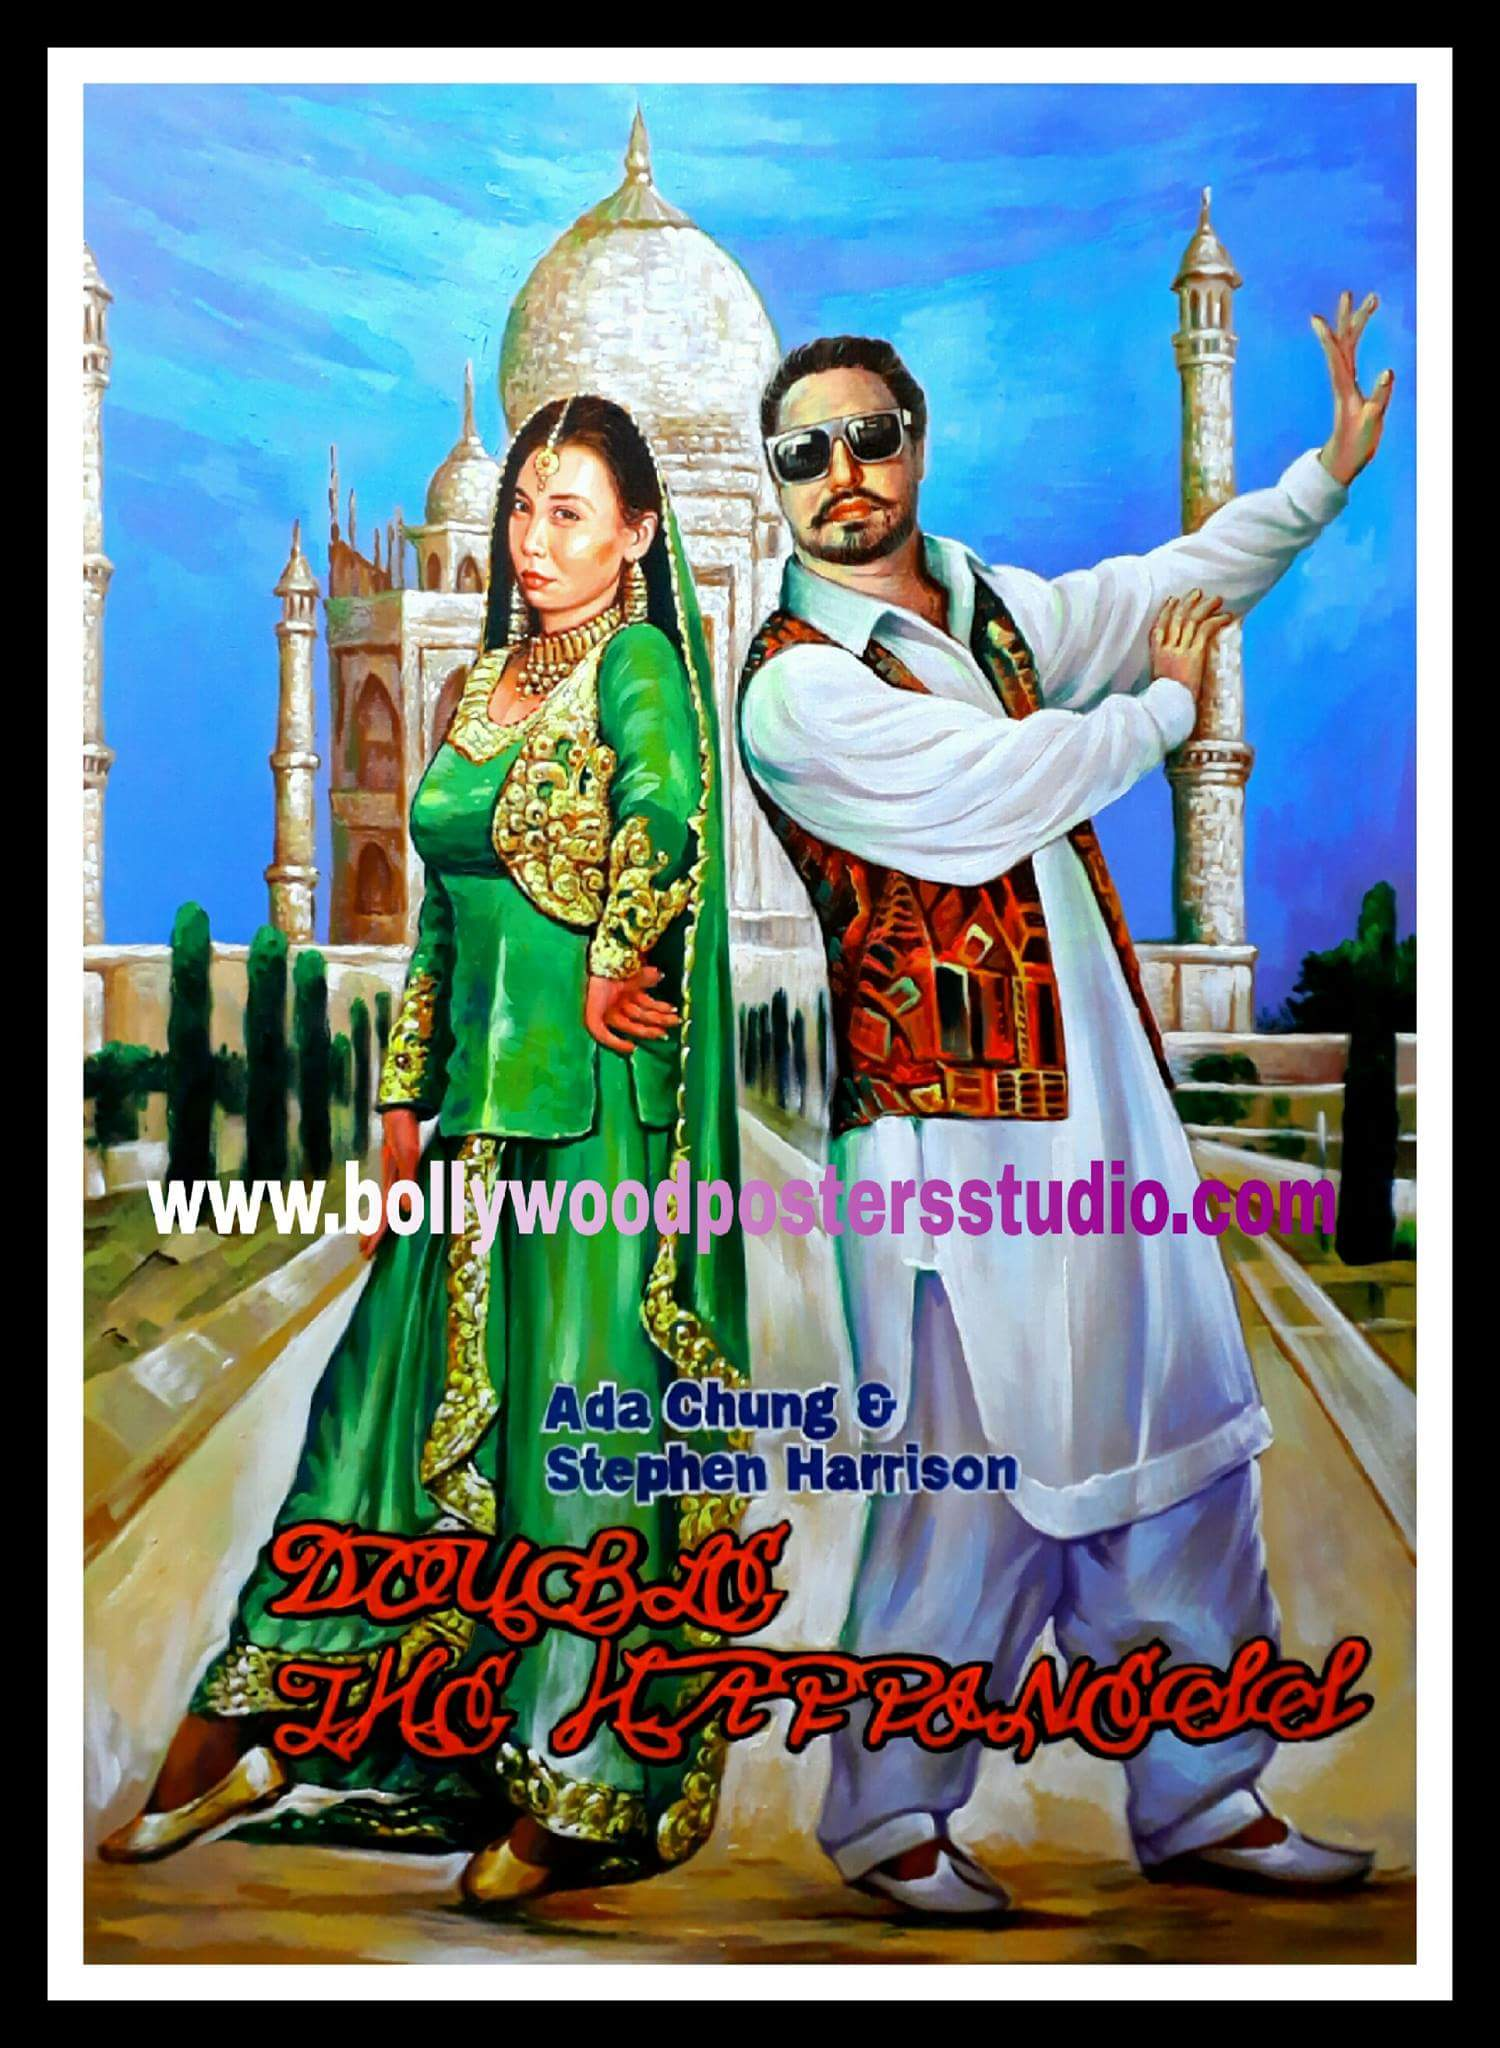 Personalized bollywood posters